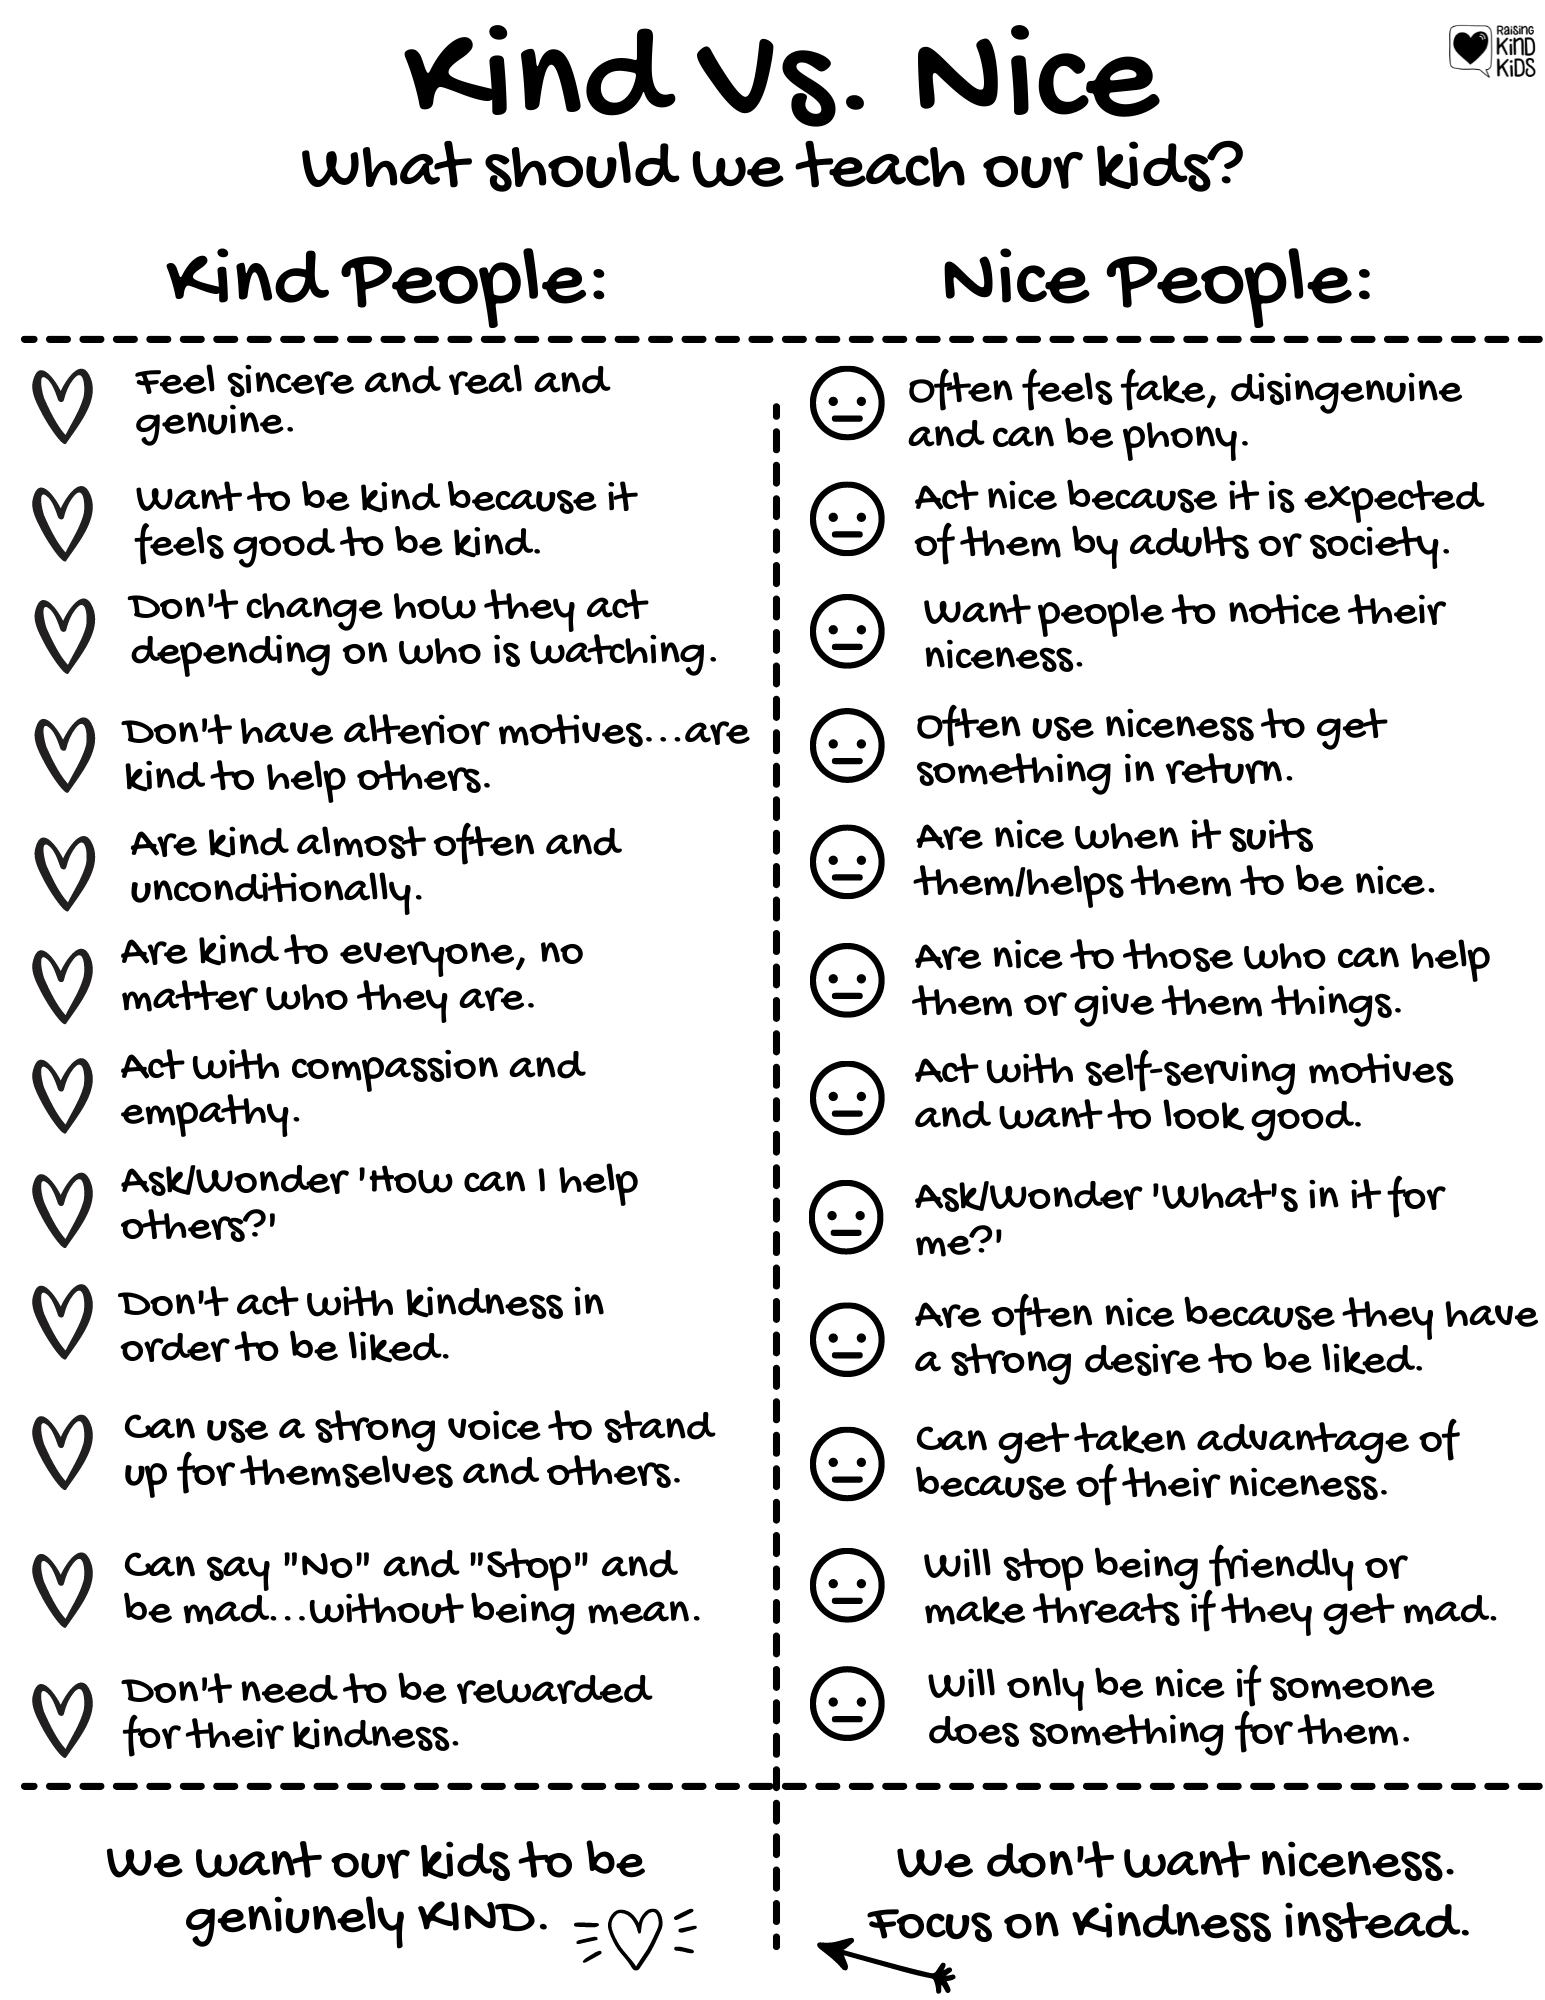 We want our kids to be kind, but our kids don't need to be nice. But we should be doing this instead to raise our kids to be the best version of themselves. This parenting advice will help teach your kids to be happier too! #parenting #parentingadvice #coffeeandcarpool #positiveparenting #raisingkindkids #kindness #nicekids #nice